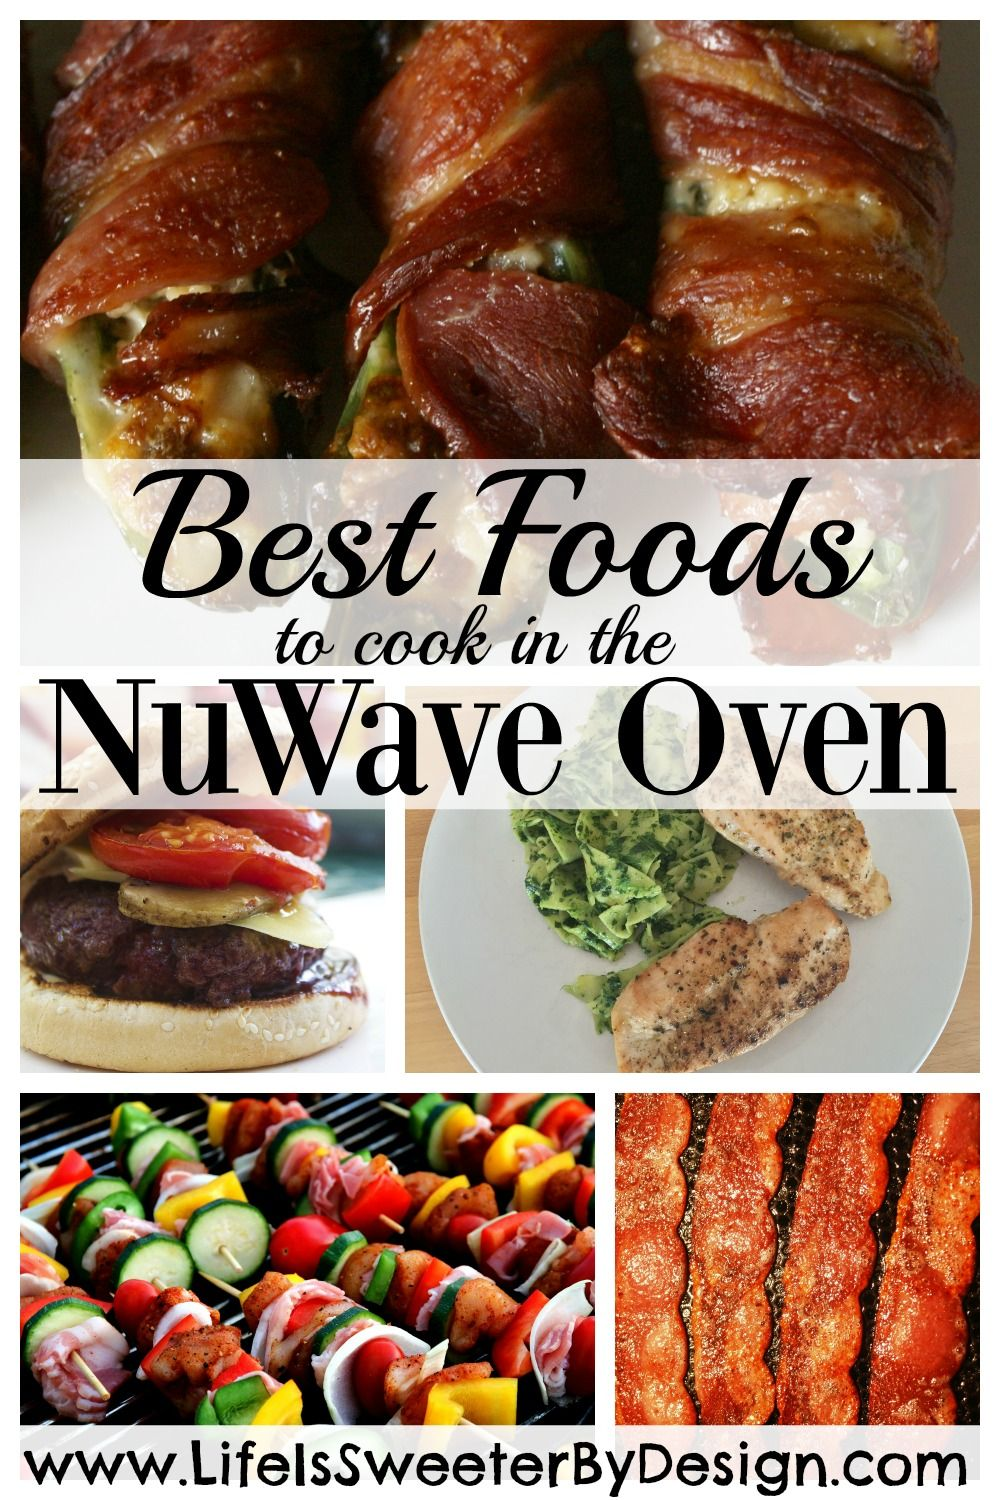 Best Foods To Make In The Nuwave Oven Life Is Sweeter By Design Oven Recipes Dinner Nuwave Oven Recipes Halogen Oven Recipes